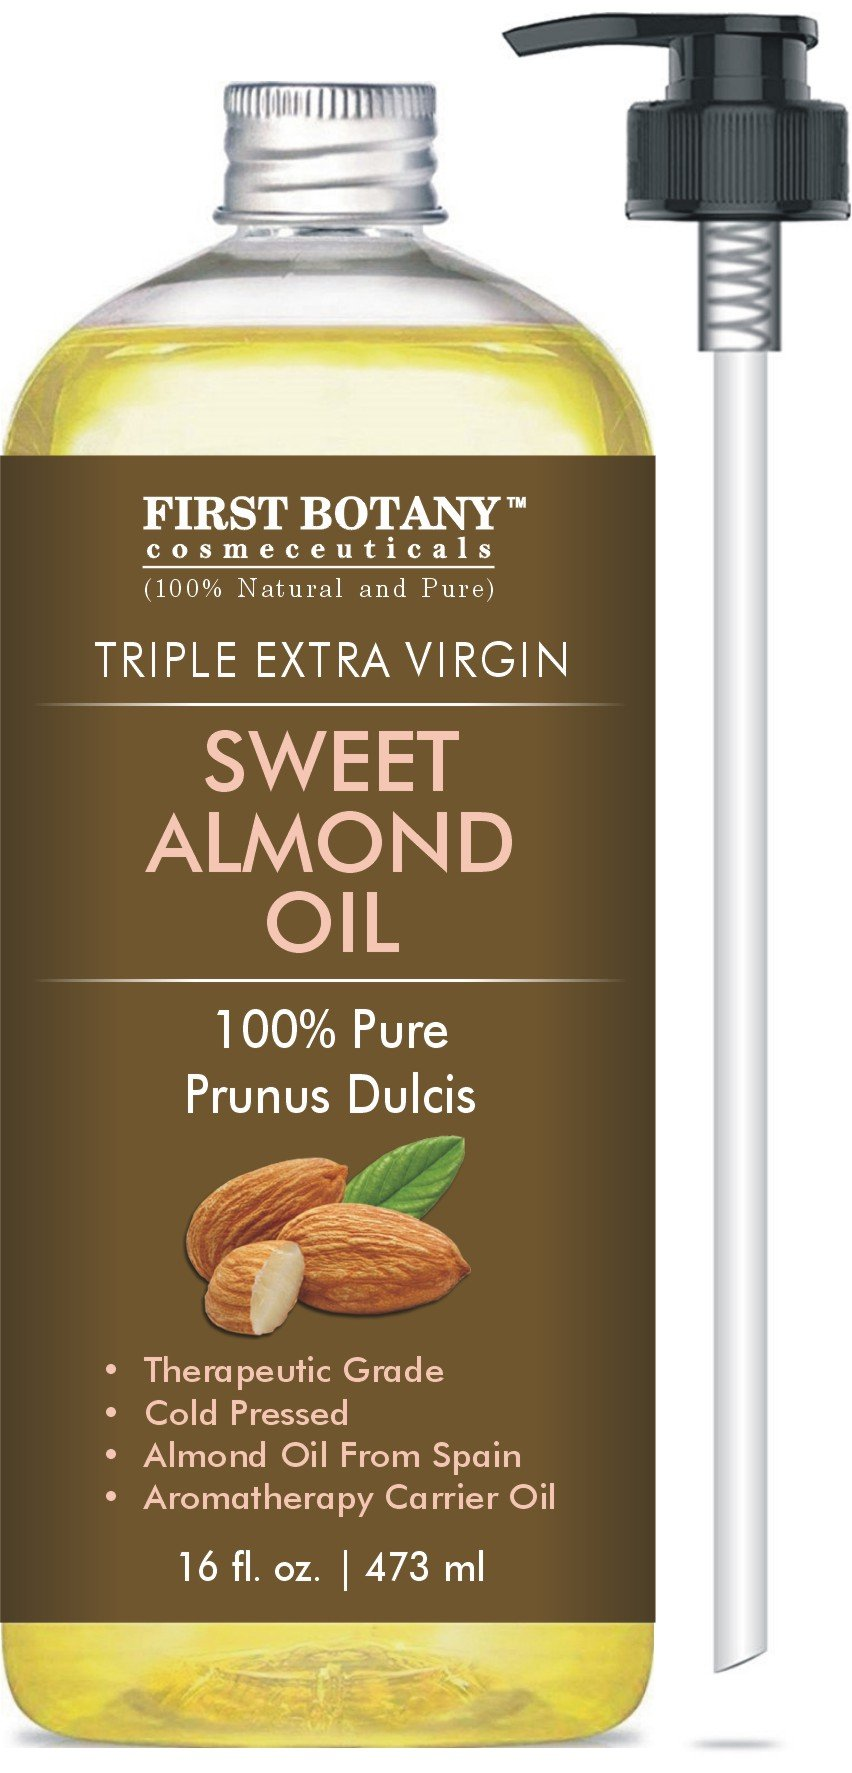 Cold Pressed Sweet Almond Oil - Triple AAA+ Grade Quality, for Hair, for Skin and for Face, 100% Pure and Natural from Spain, 16 fl oz by First Botany Cosmeceuticals